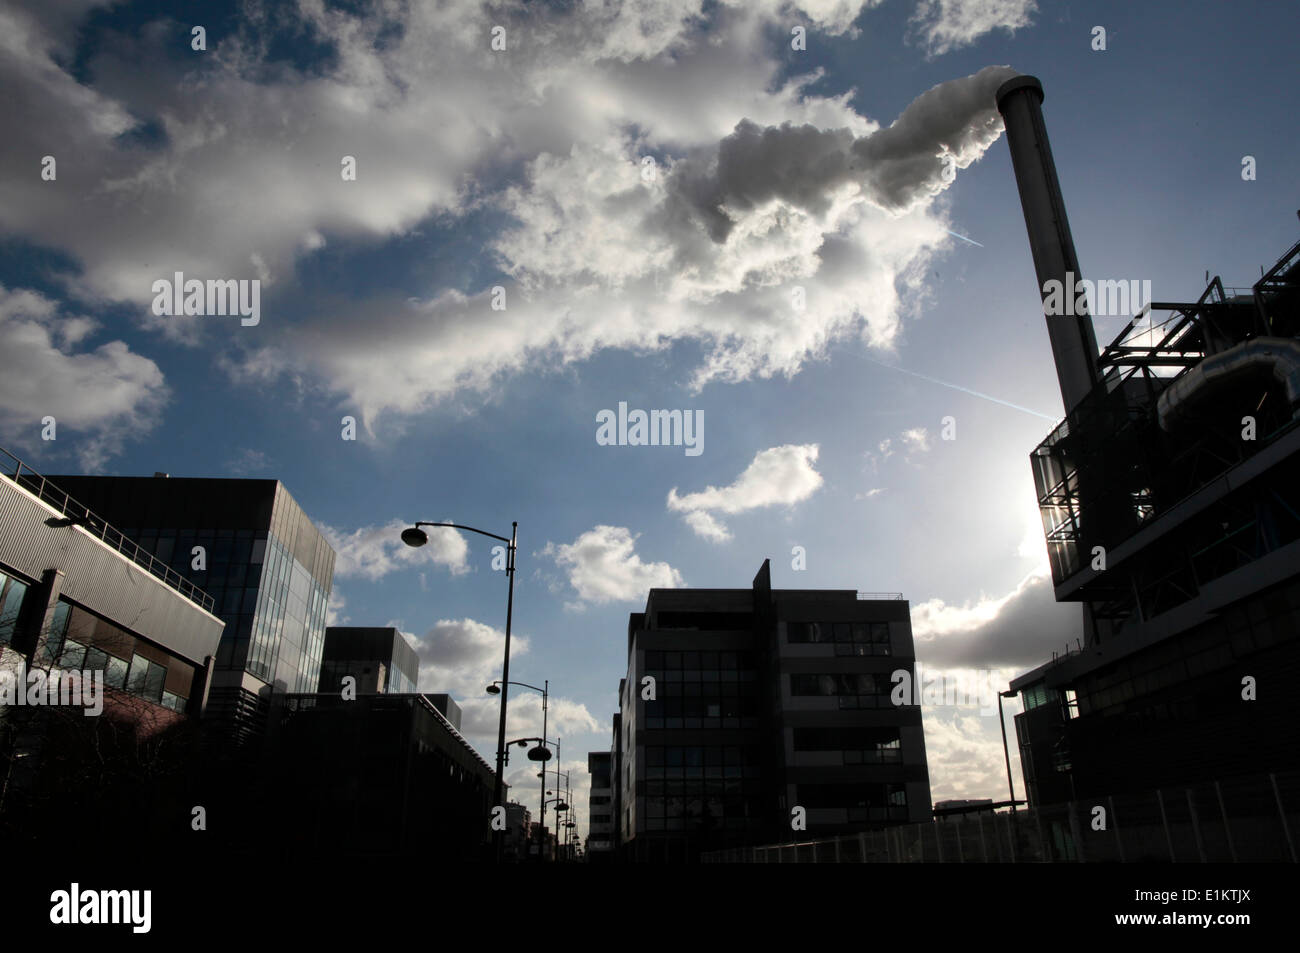 Scrap recycling plant - Stock Image